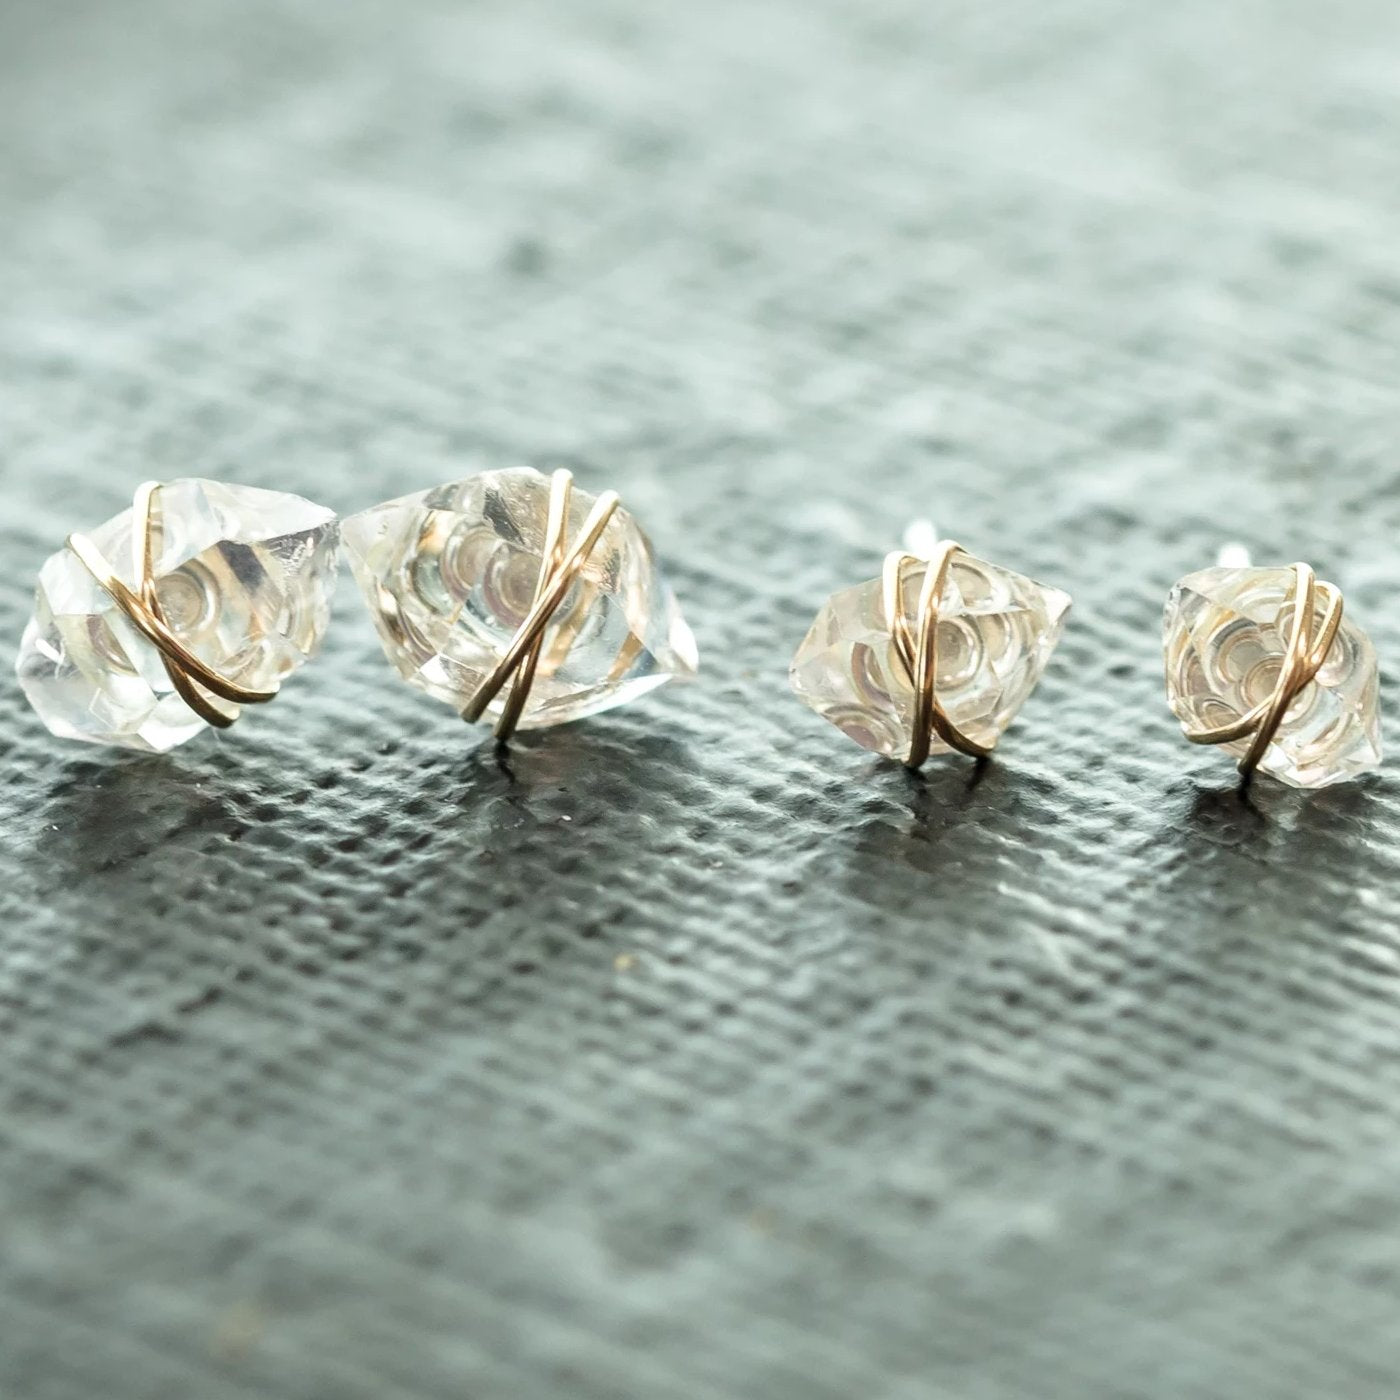 Gold WireGold Wire Wire Wrapped Herkimer Diamond Earrings | Liz.Beth Jewelry Co.Wire Wrapped Herkimer Diamond Earrings